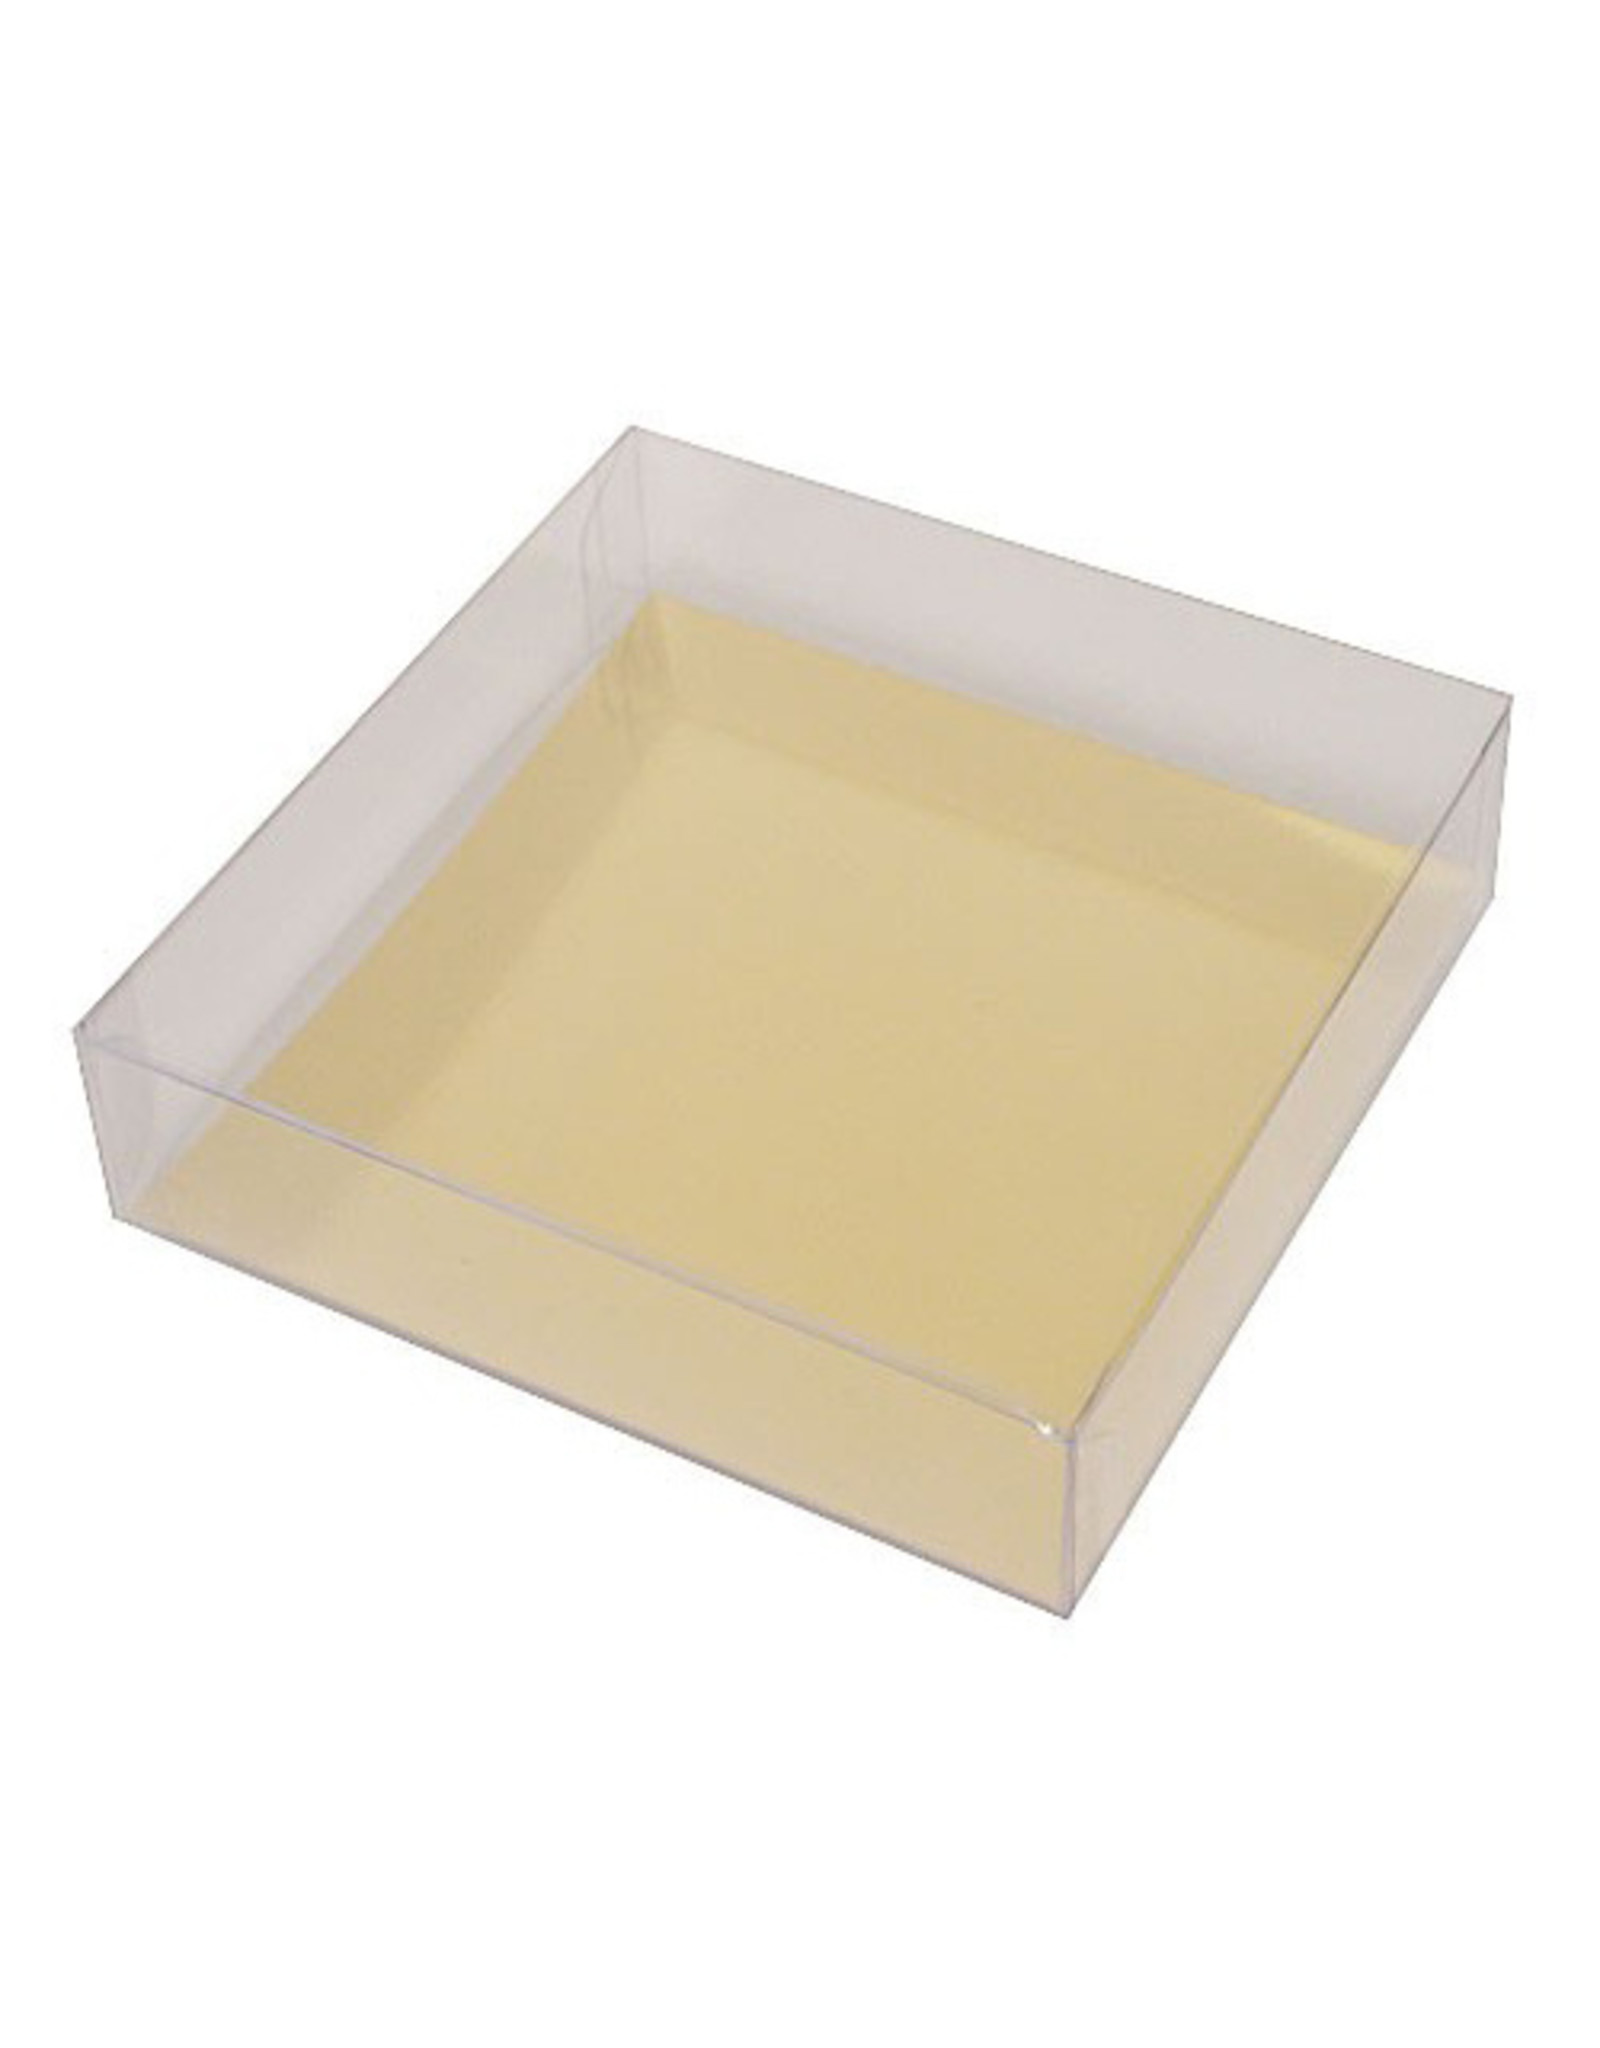 Square transparent box in different sizes (per 100 pieces)